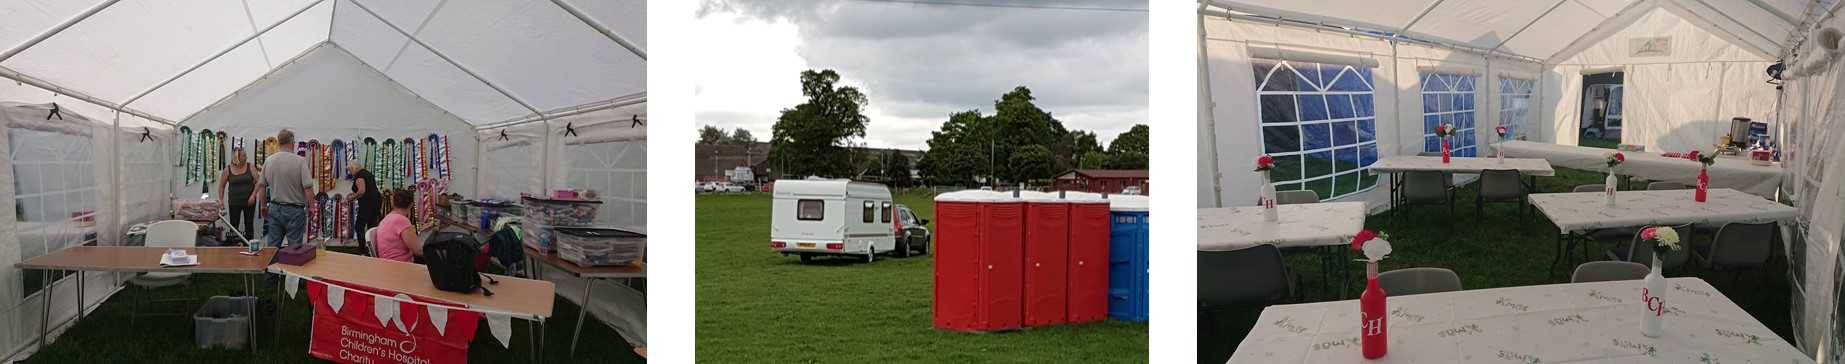 D-tox rents portable toilets to support horse shows, gymkhanas and pony camps